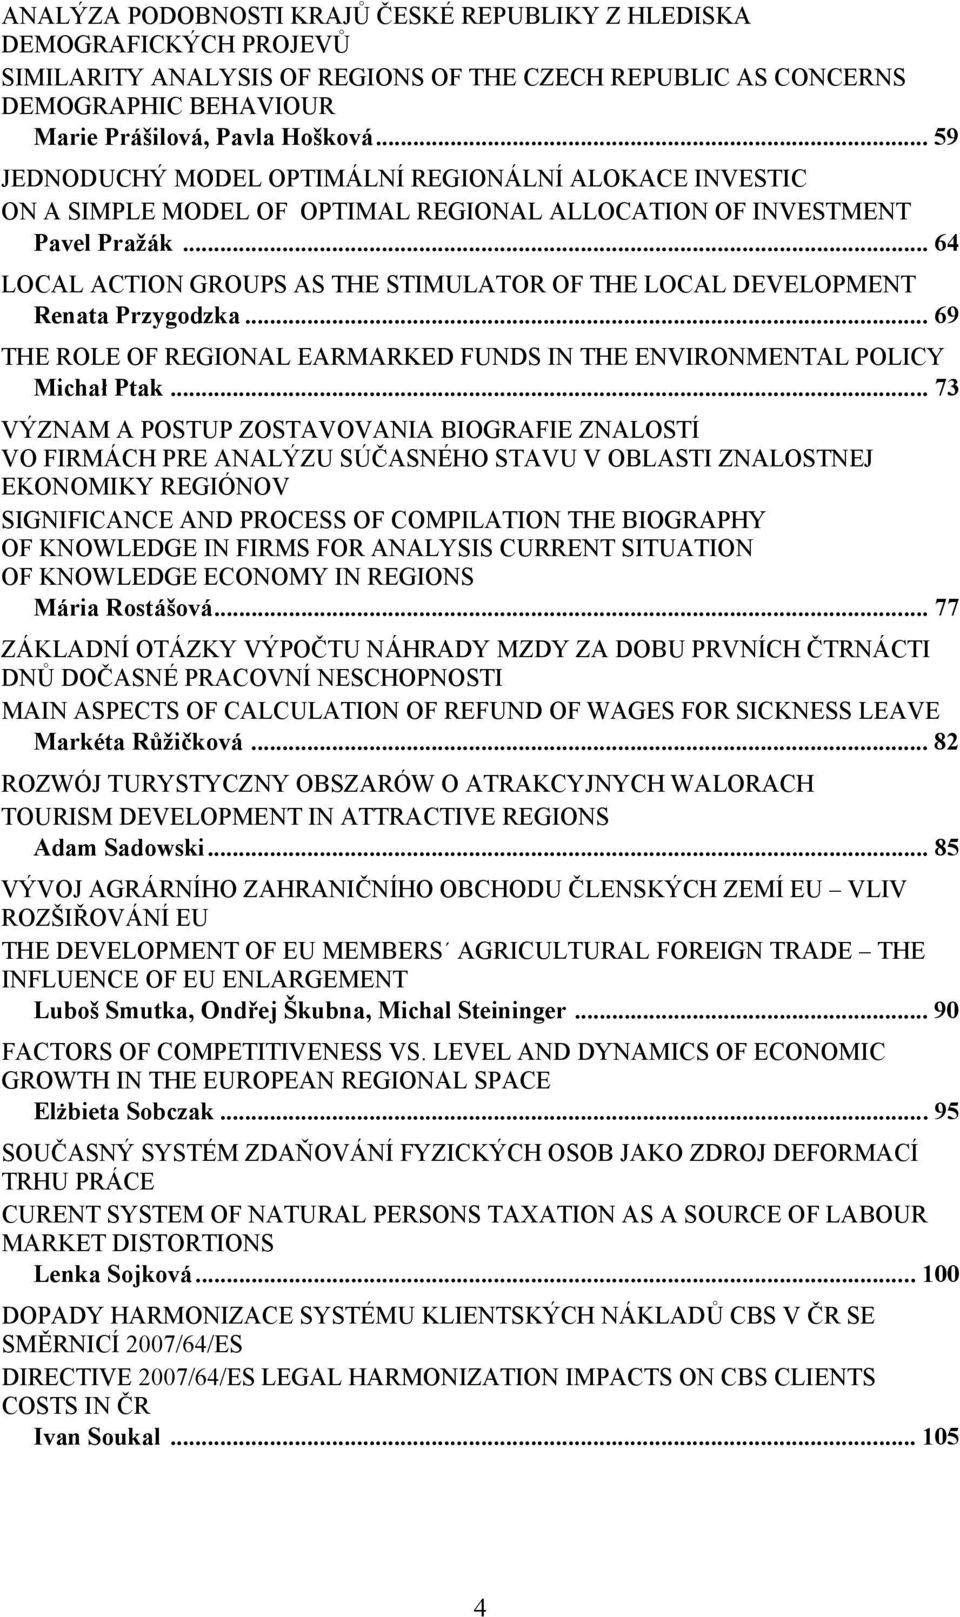 .. 64 LOCAL ACTION GROUPS AS THE STIMULATOR OF THE LOCAL DEVELOPMENT Renata Przygodzka... 69 THE ROLE OF REGIONAL EARMARKED FUNDS IN THE ENVIRONMENTAL POLICY Michał Ptak.